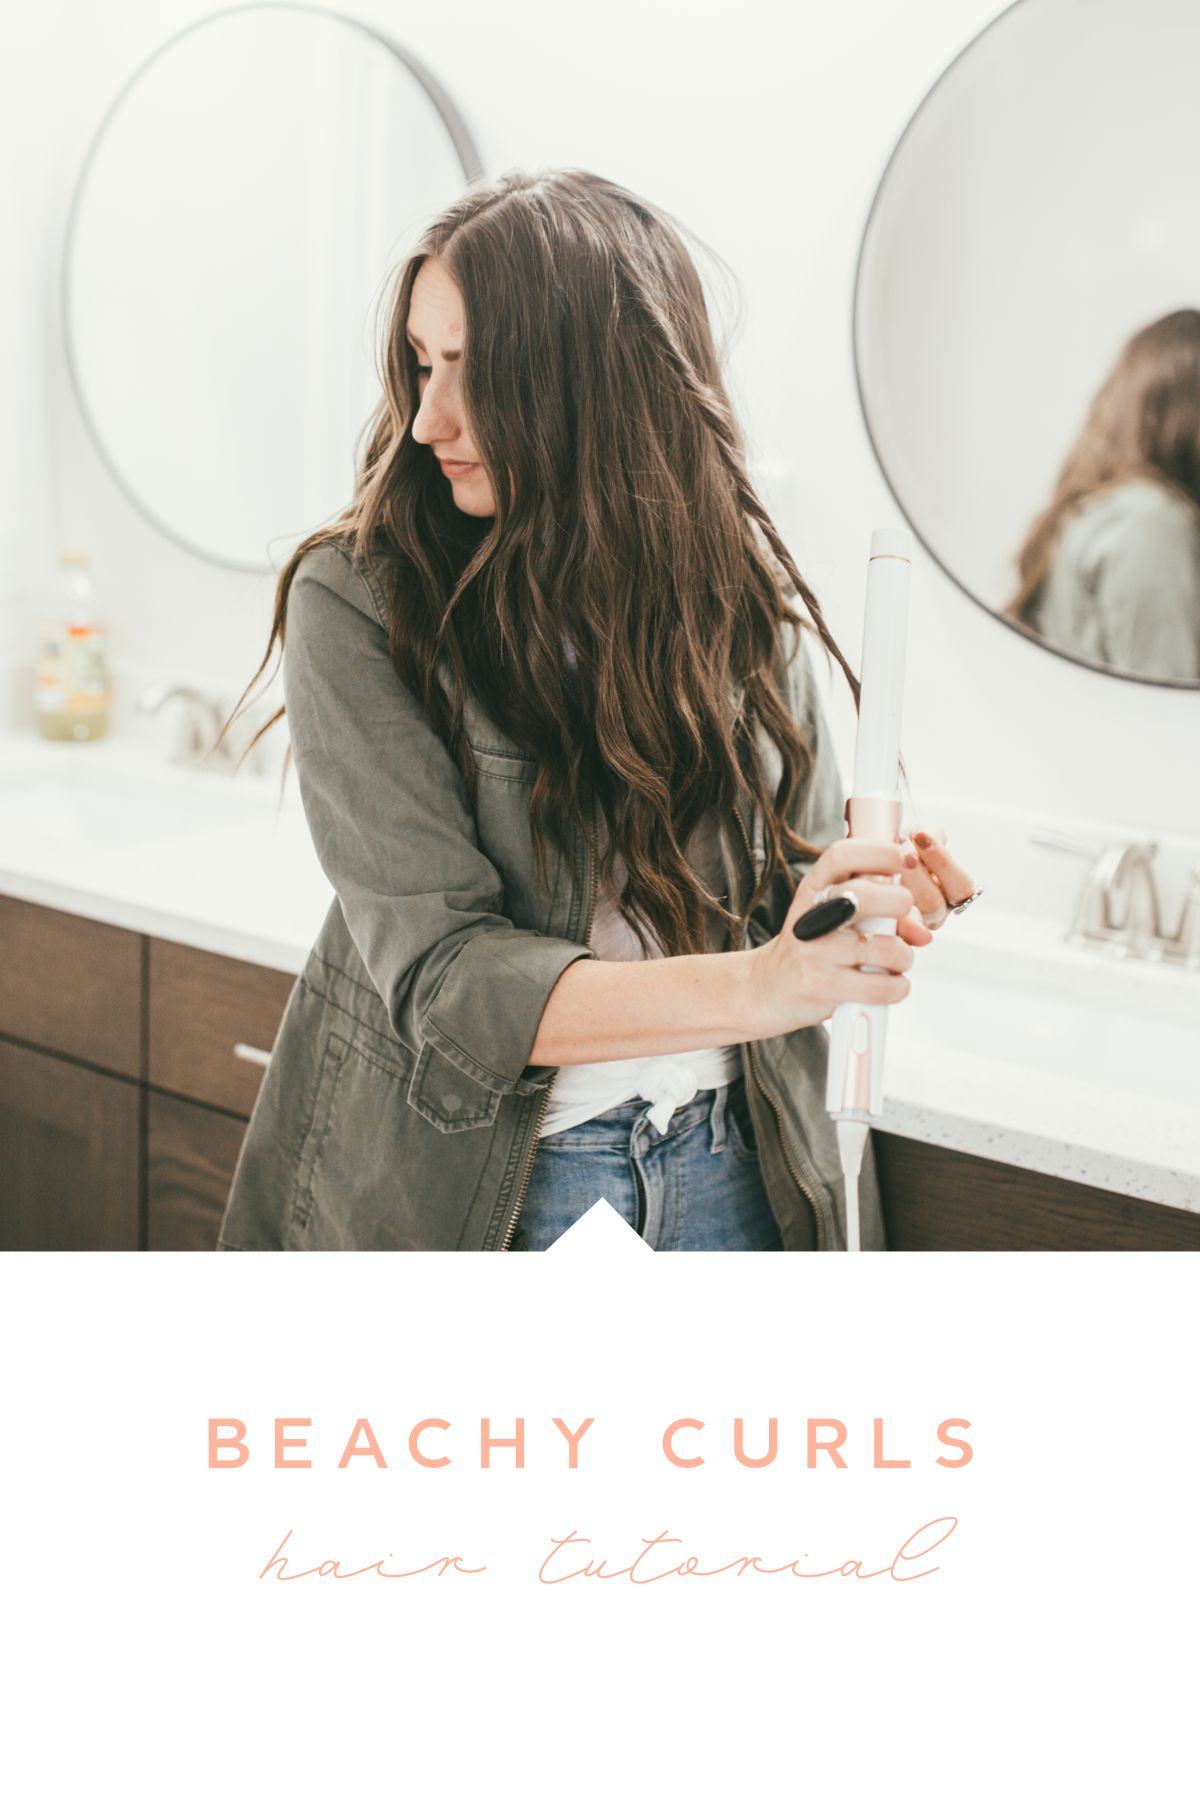 Curious how to get the perfect beachy curls? Utah Style blogger Dani Marie is sharing the best beachy curls hair tutorial here!